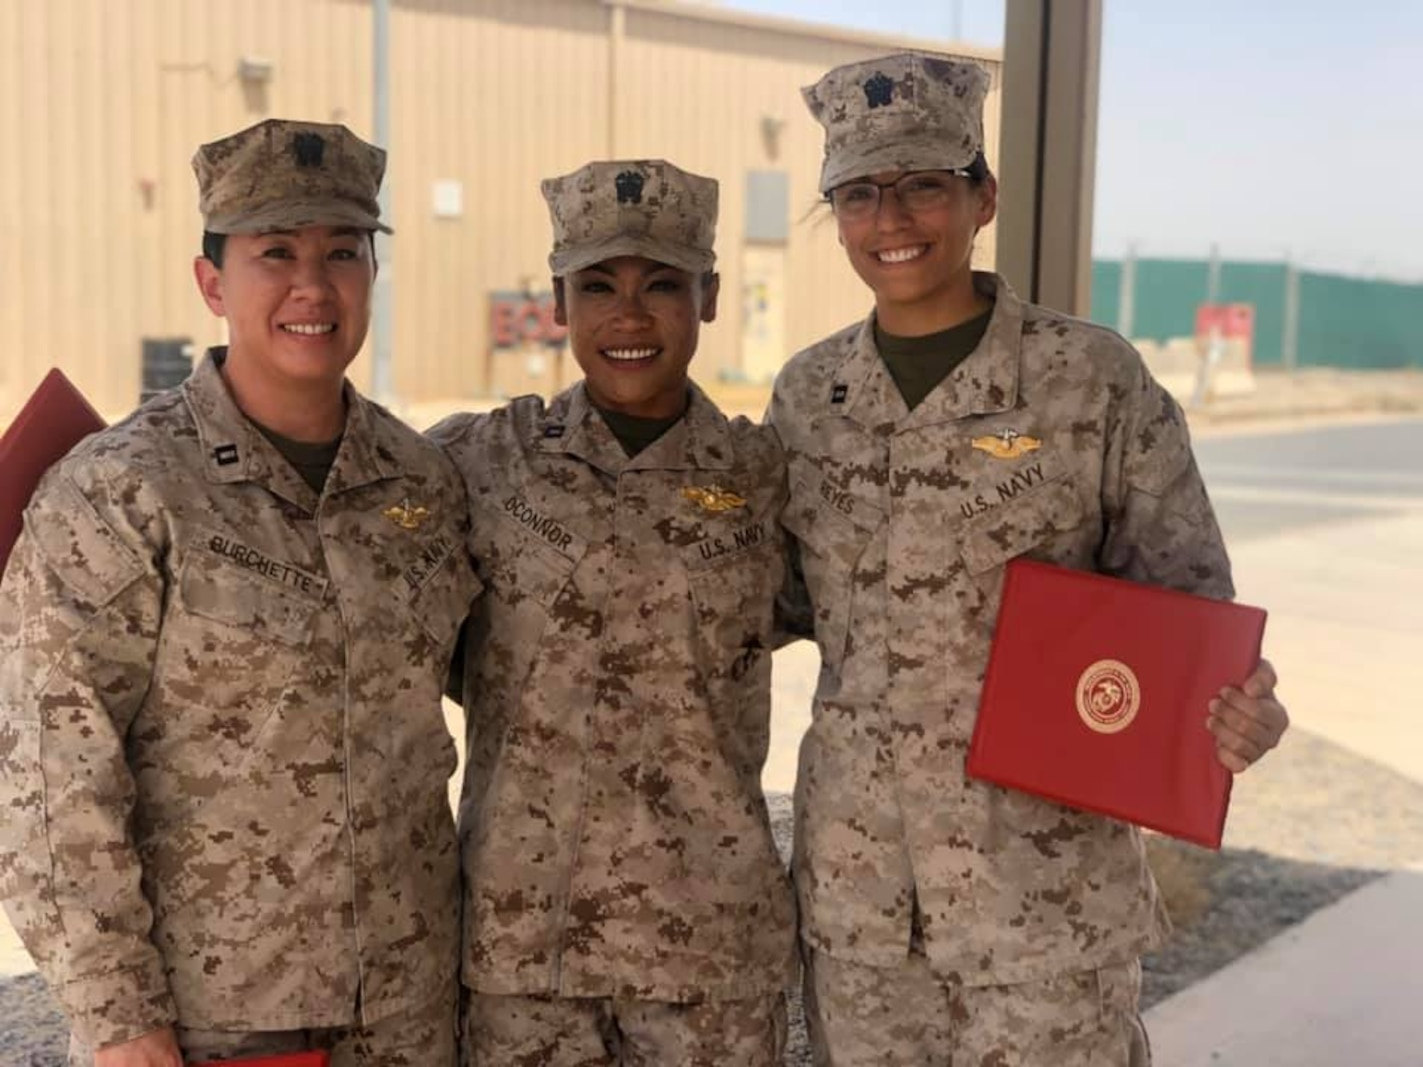 US Navy Sailor, Lieutenant Burchette, Lieutenant OConnor, and Lieutenant Reyes from Combat Logistics Detachment 27,SPMAGTF CR-CC, are awarded their Fleet Marine Force pins after undergoing an arduous evaluation on Marine Corps customs and traditions, professional knowledge, and history on May 20, 2020.